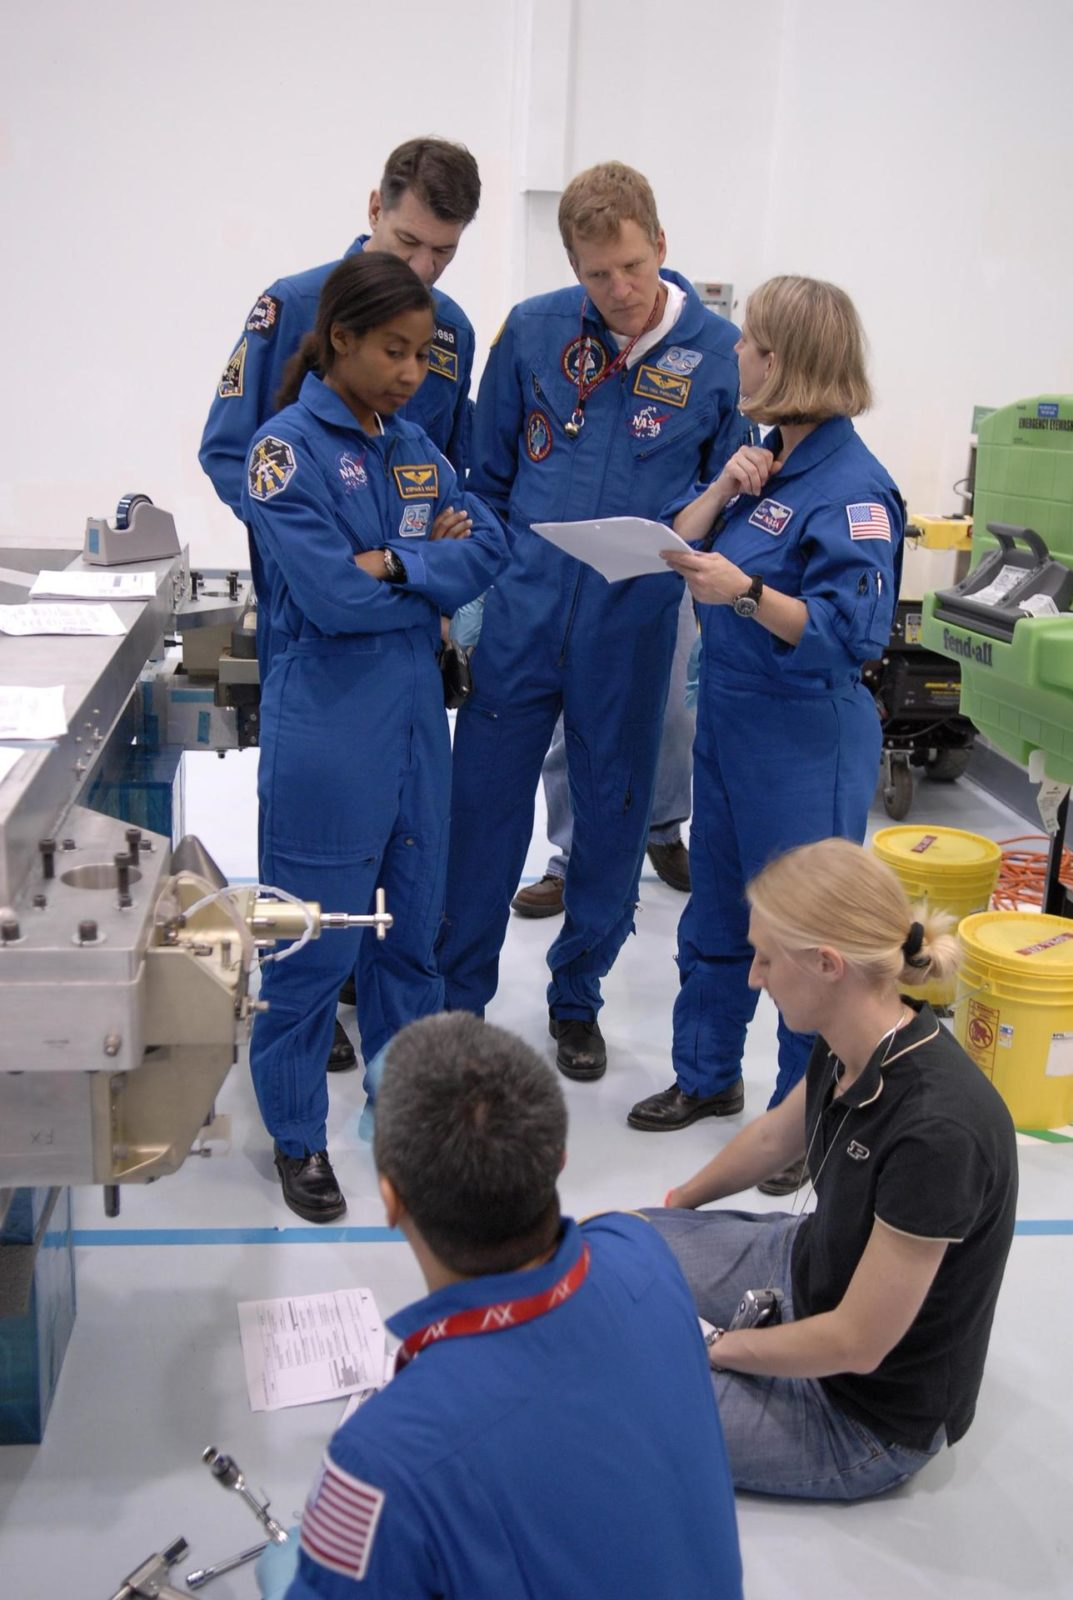 "KENNEDY SPACE CENTER, FLA. --  Mission STS-120 crew members familiarize themselves with equipment inside the Space Station Processing Facility during a visit to Kennedy Space Center. Standing from left, are Mission Specialists Stephanie Wilson, Paolo Nespoli (with the European Space Agency), Scott Parazynski and Commander Pam Melroy. In the foreground at left is Mission Specialist Daniel Tani.  Other crew members include Pilot George Zamka and Mission Specialists Douglas Wheelock and Clayton Anderson.  Mission STS-120 will deliver the Node 2 ""Harmony"" connecting module to the station.  During the mission, Tani and Anderson will transfer to the station and remain as flight engineers for Expedition 15. The mission is tentatively scheduled for August of this year. Photo credit: NASA/Kim Shiflett KSC-07pd0745"